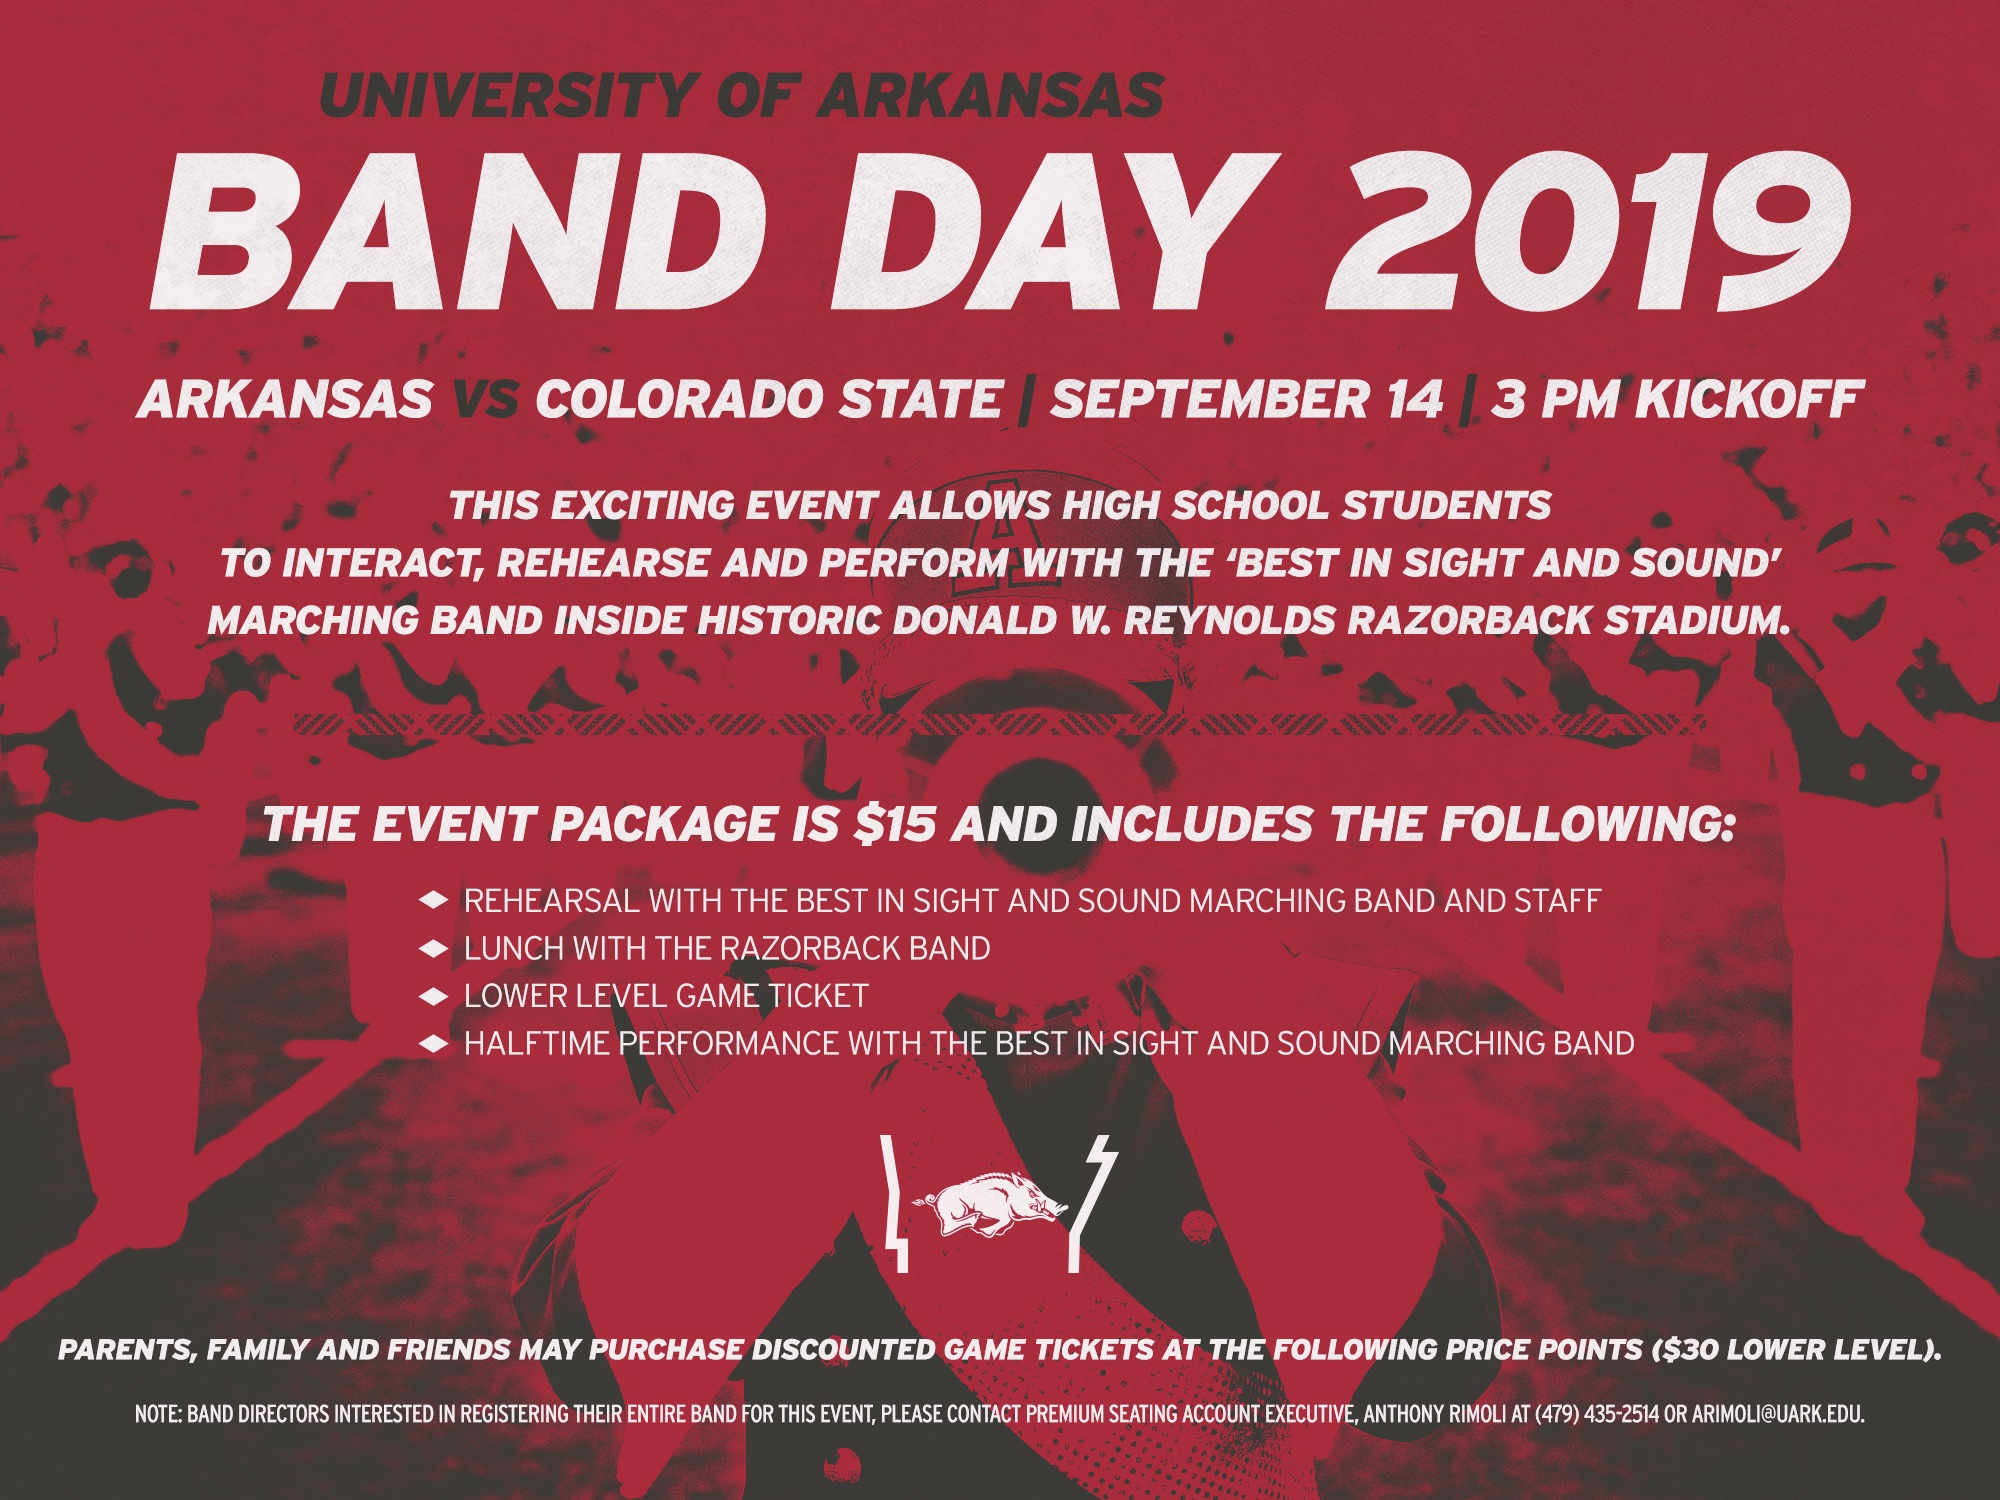 Band Day 2019